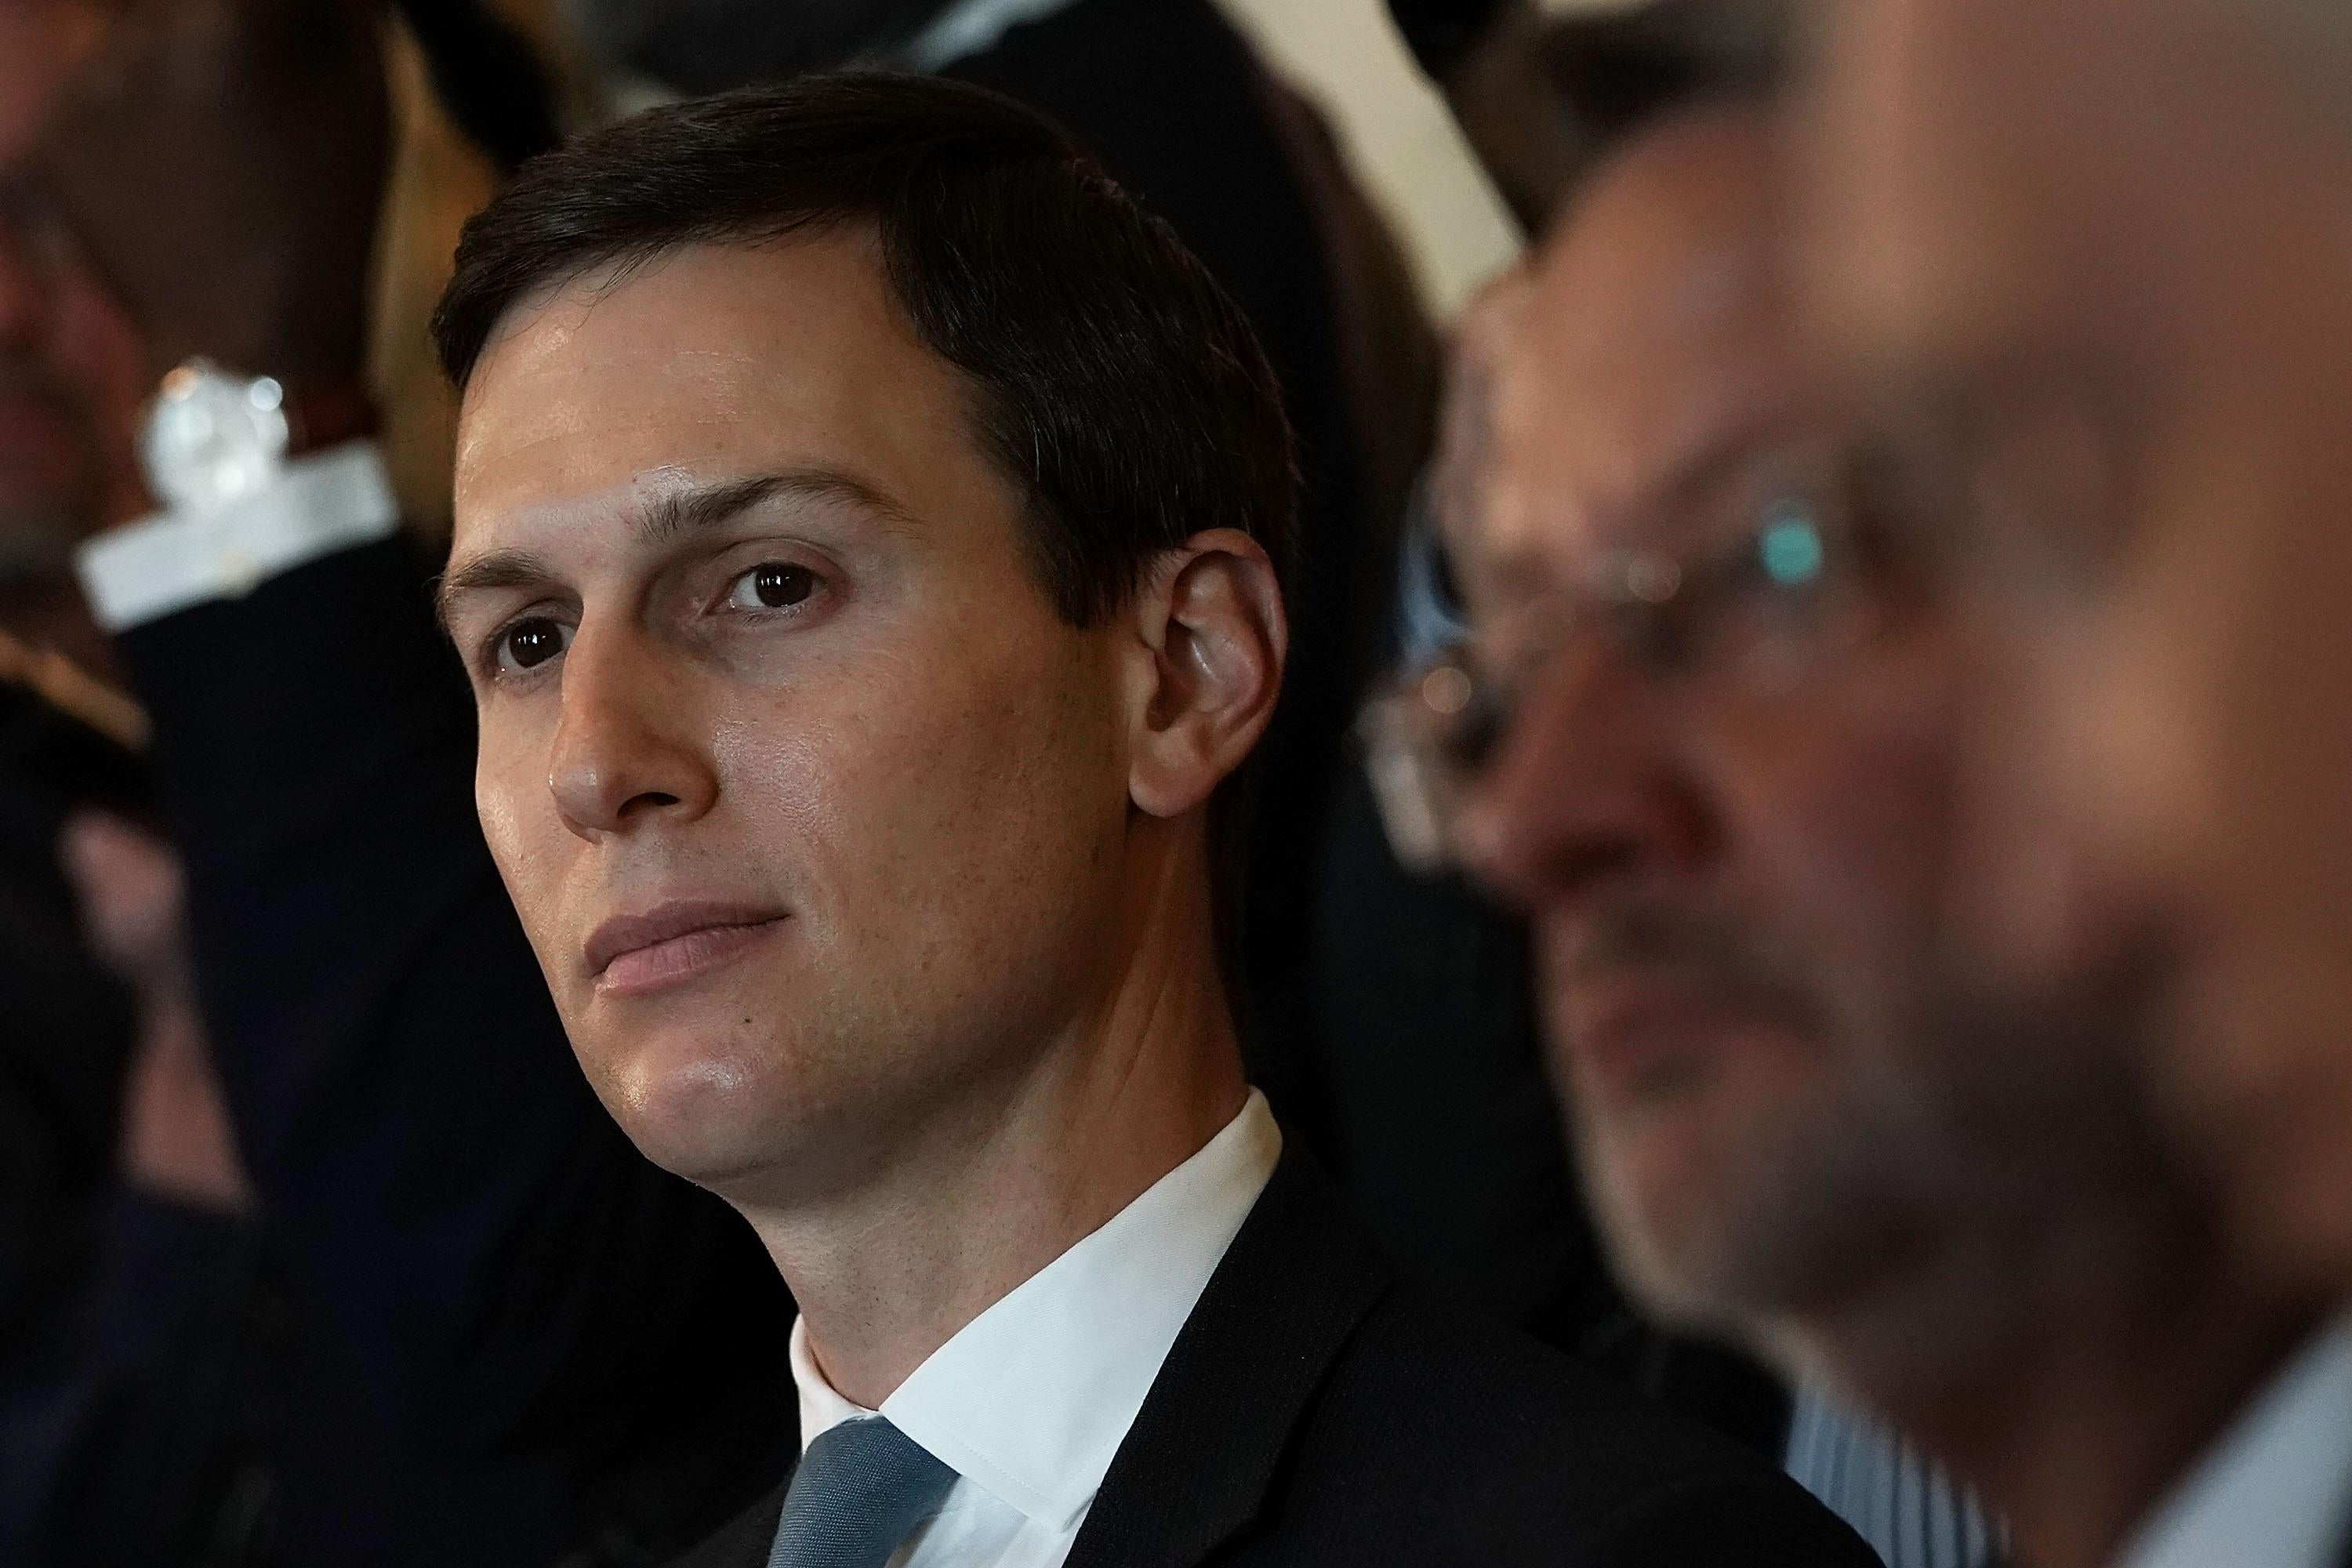 Jared Kushner, White House Senior Adviser and son-in-law of U.S. President Donald Trump, listens during a meeting between President Donald Trump and congressional members in the Cabinet Room of the White House.